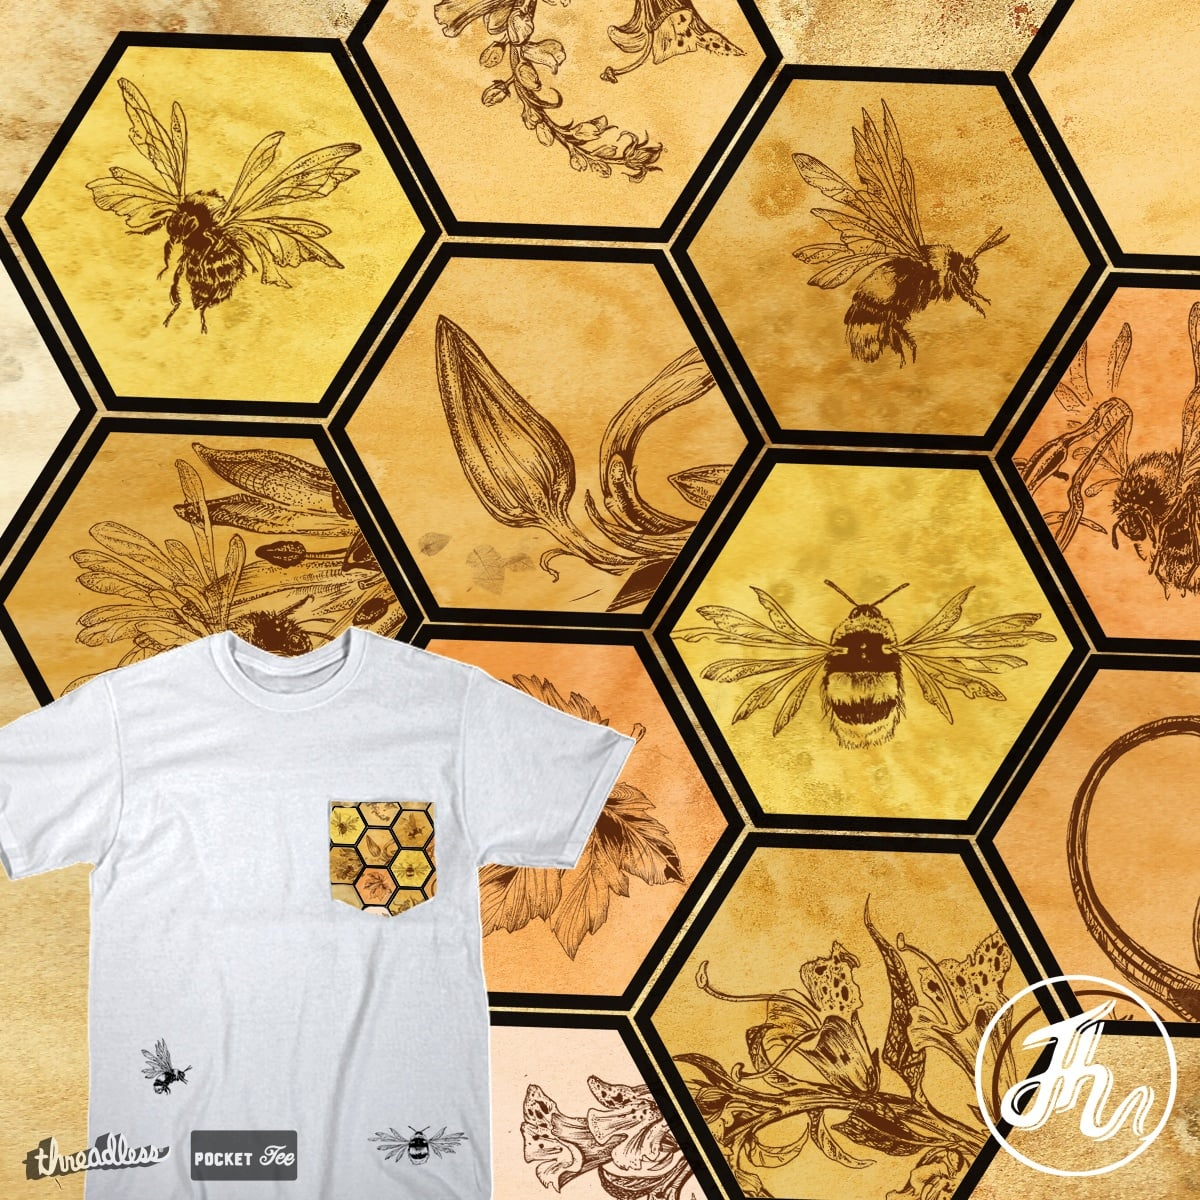 Honey Pocket by JonHabens on Threadless